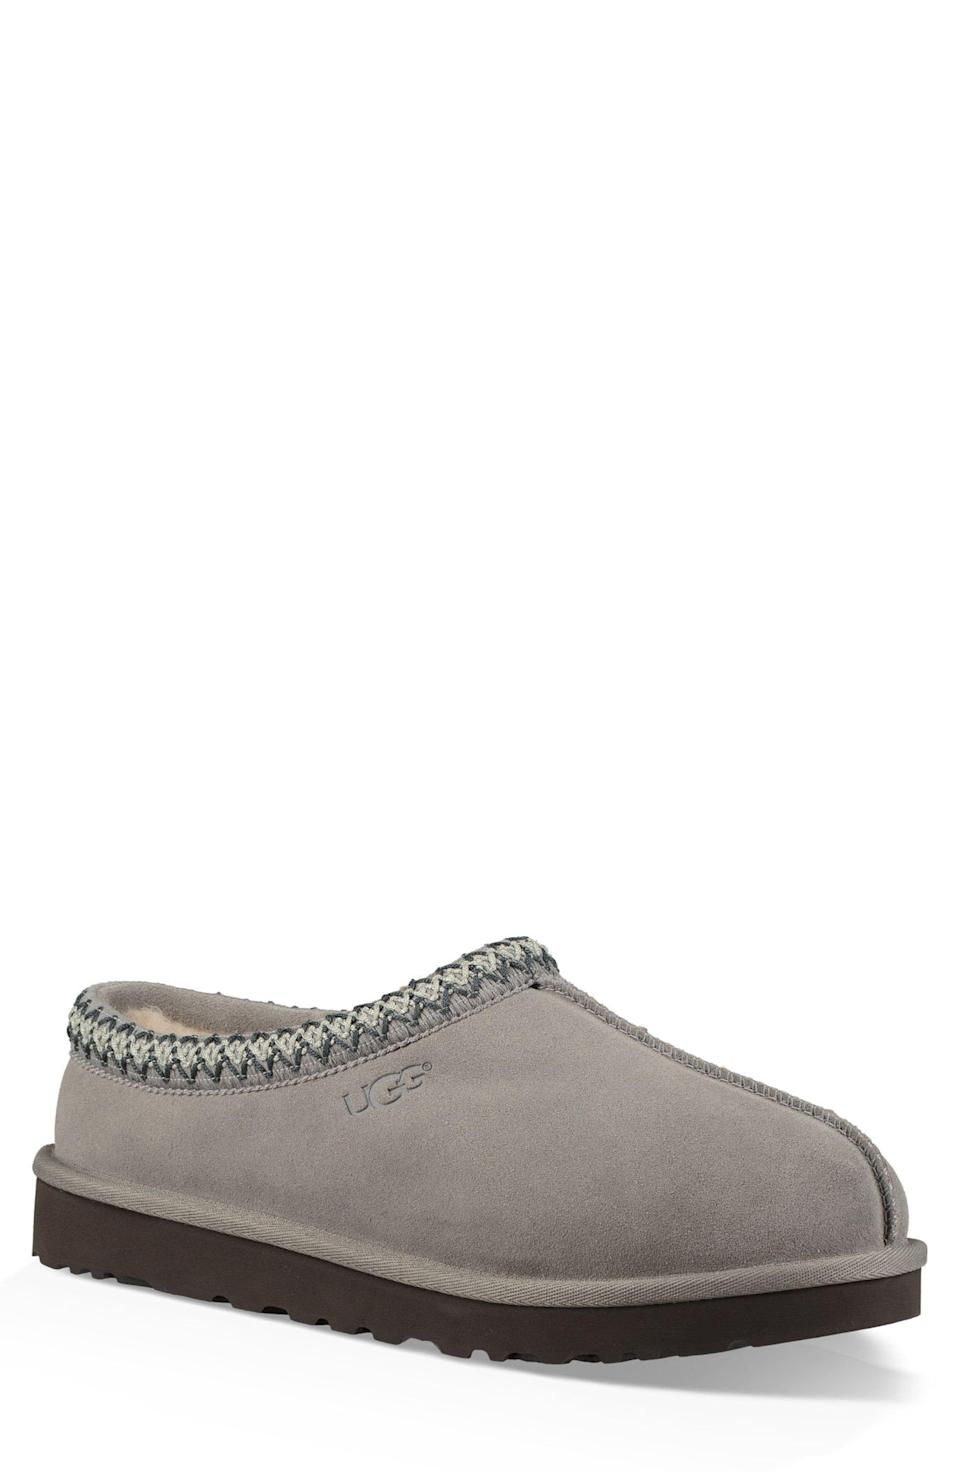 "<p><strong>UGG\u003CSUP\u003E\u003C\u002FSUP\u003E</strong></p><p>nordstrom.com</p><p><strong>$99.95</strong></p><p><a href=""https://go.redirectingat.com?id=74968X1596630&url=https%3A%2F%2Fwww.nordstrom.com%2Fs%2Fugg-tasman-slipper-men%2F2792087&sref=https%3A%2F%2Fwww.menshealth.com%2Ftechnology-gear%2Fg34417533%2Fbest-boyfriend-gifts%2F"" rel=""nofollow noopener"" target=""_blank"" data-ylk=""slk:BUY IT HERE"" class=""link rapid-noclick-resp"">BUY IT HERE</a></p><p>Completely stunted on what to get your boyfriend? Ugg slippers are about as universally loved a gift as it gets. They're comfy, they're cozy, and they're a very good gift. </p>"